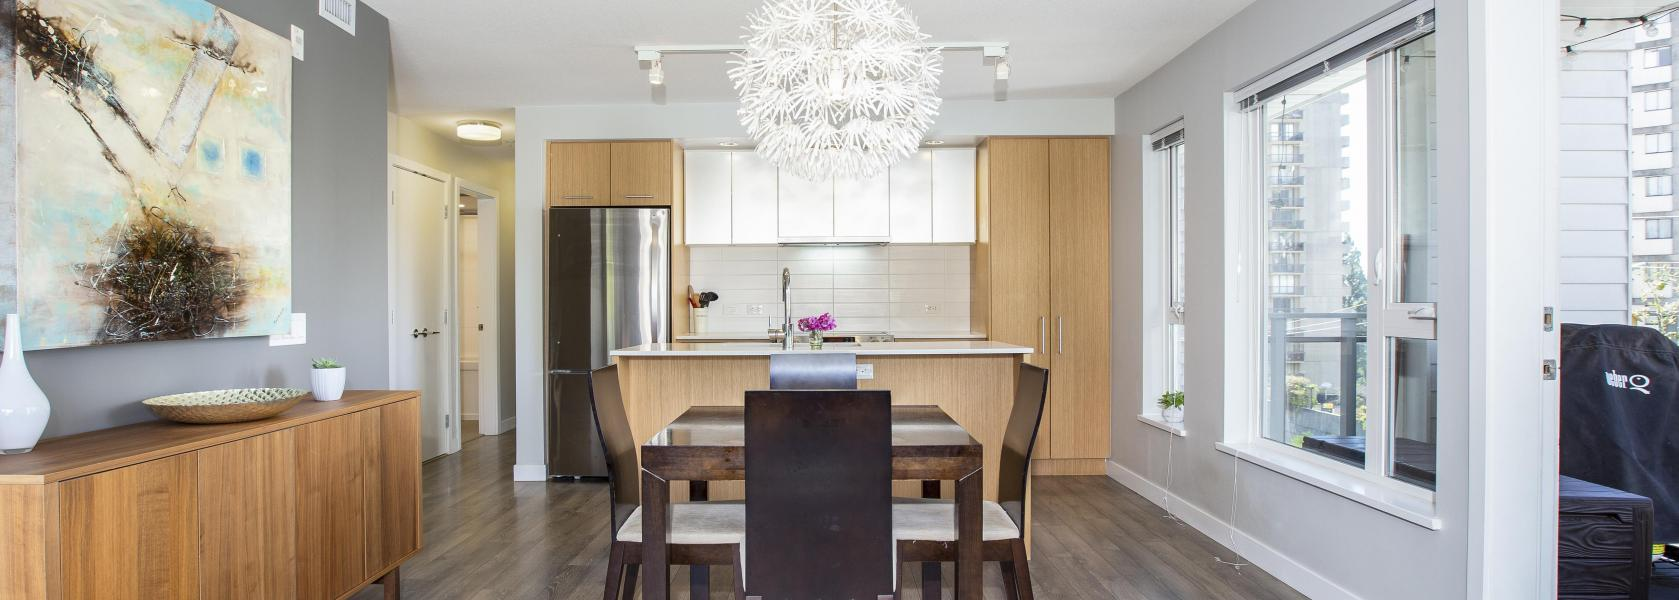 406 - 221 E 3rd Street, Lower Lonsdale, North Vancouver